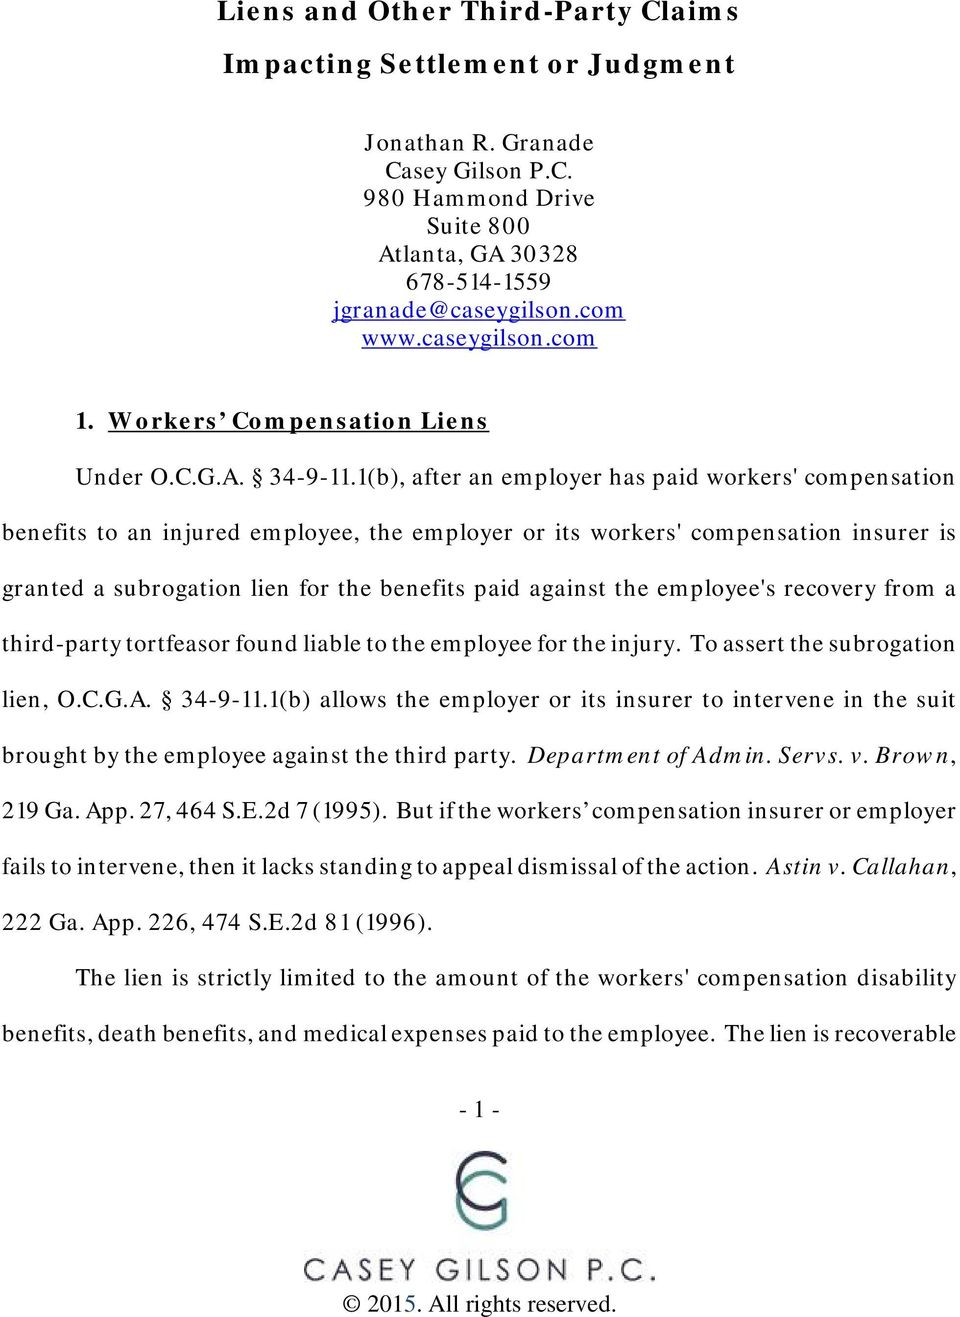 1(b), after an employer has paid workers' compensation benefits to an injured employee, the employer or its workers' compensation insurer is granted a subrogation lien for the benefits paid against